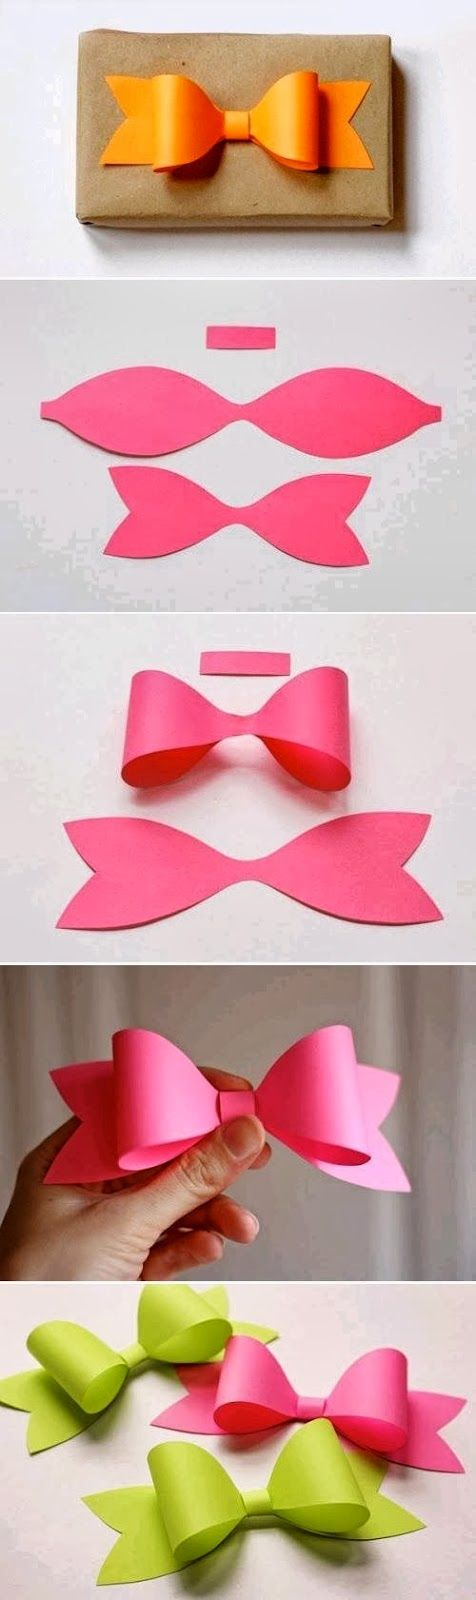 Handmade paper bows, so cute!